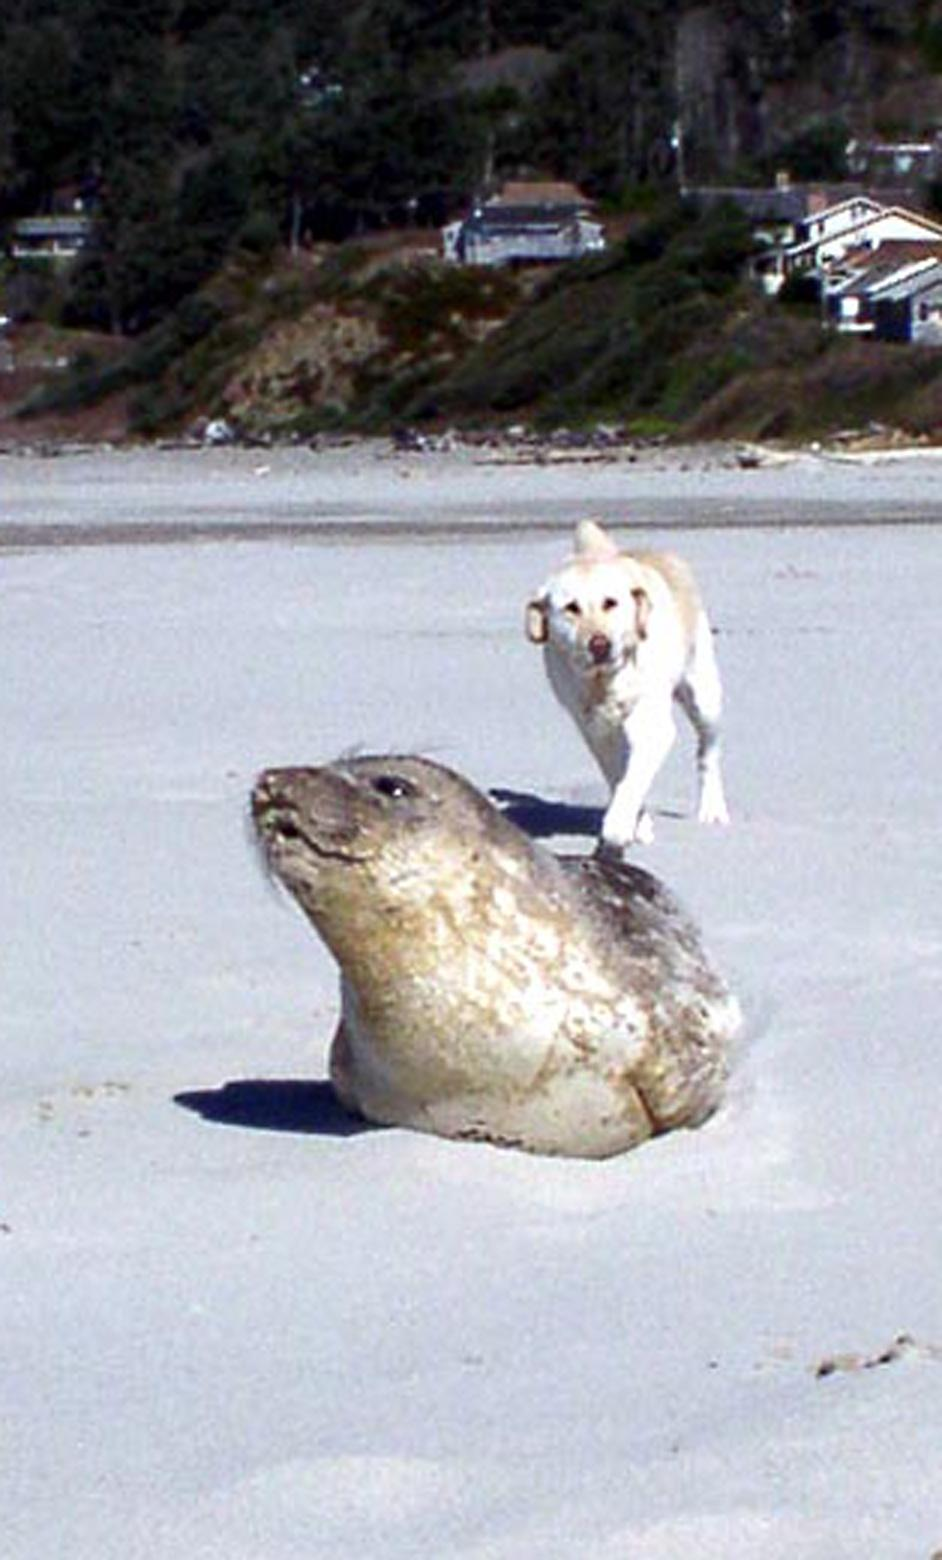 Photo of dog approaching a seal on the beach.